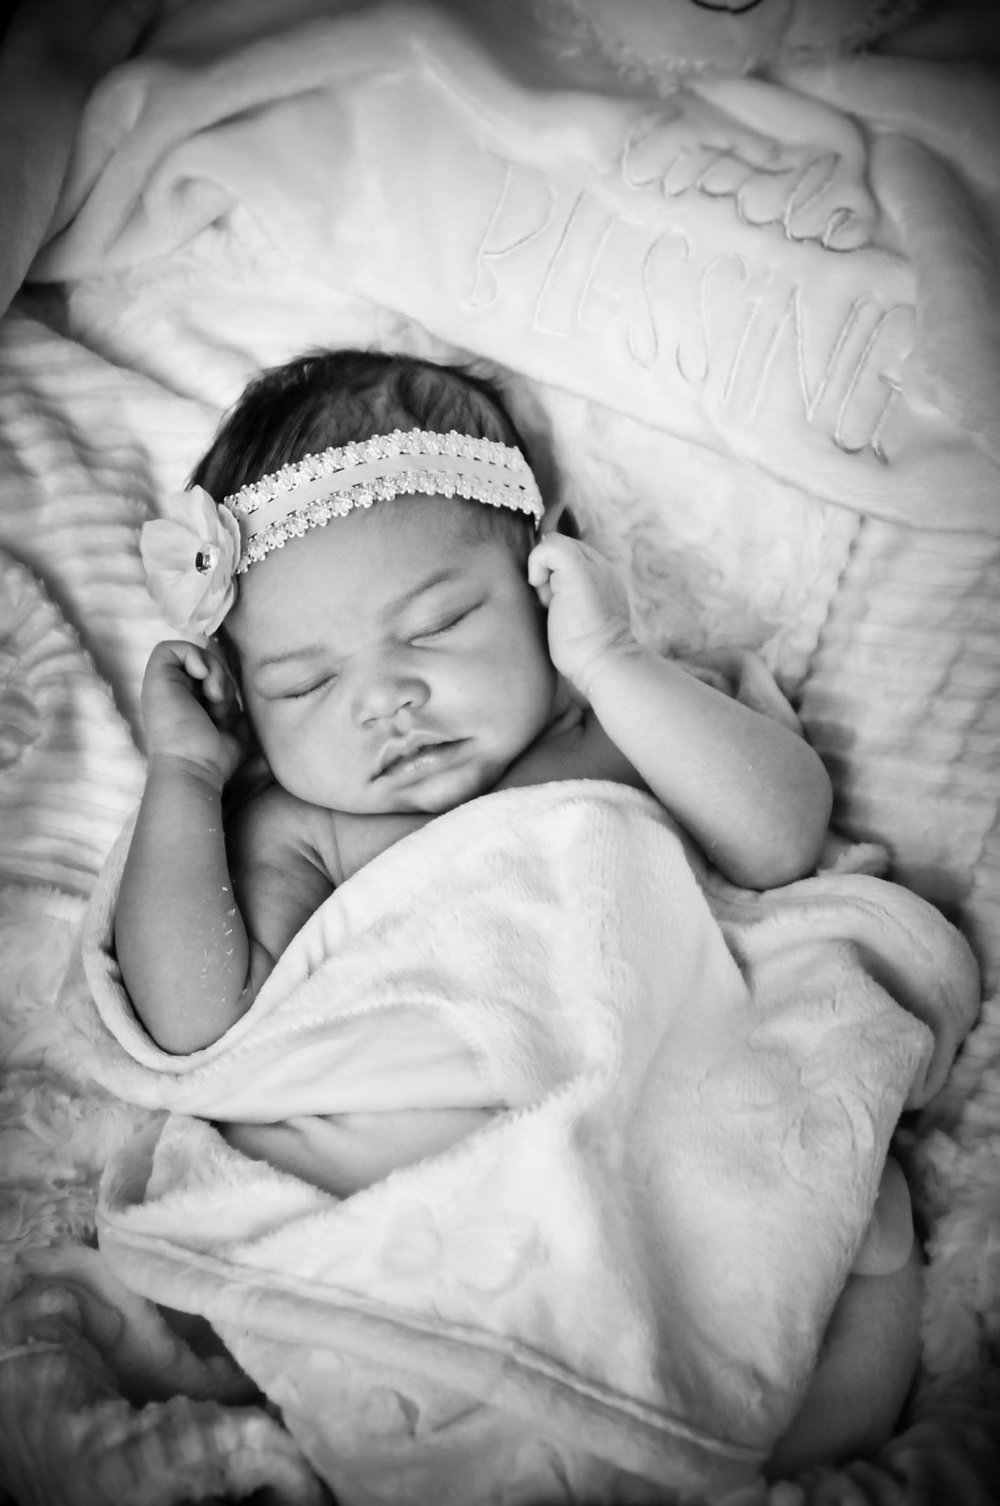 CarrieWestonStudios_CarrieAnneGonzalez_Portrait_wedding_Photography_Northport_Newborn_Isabelle17.jpg